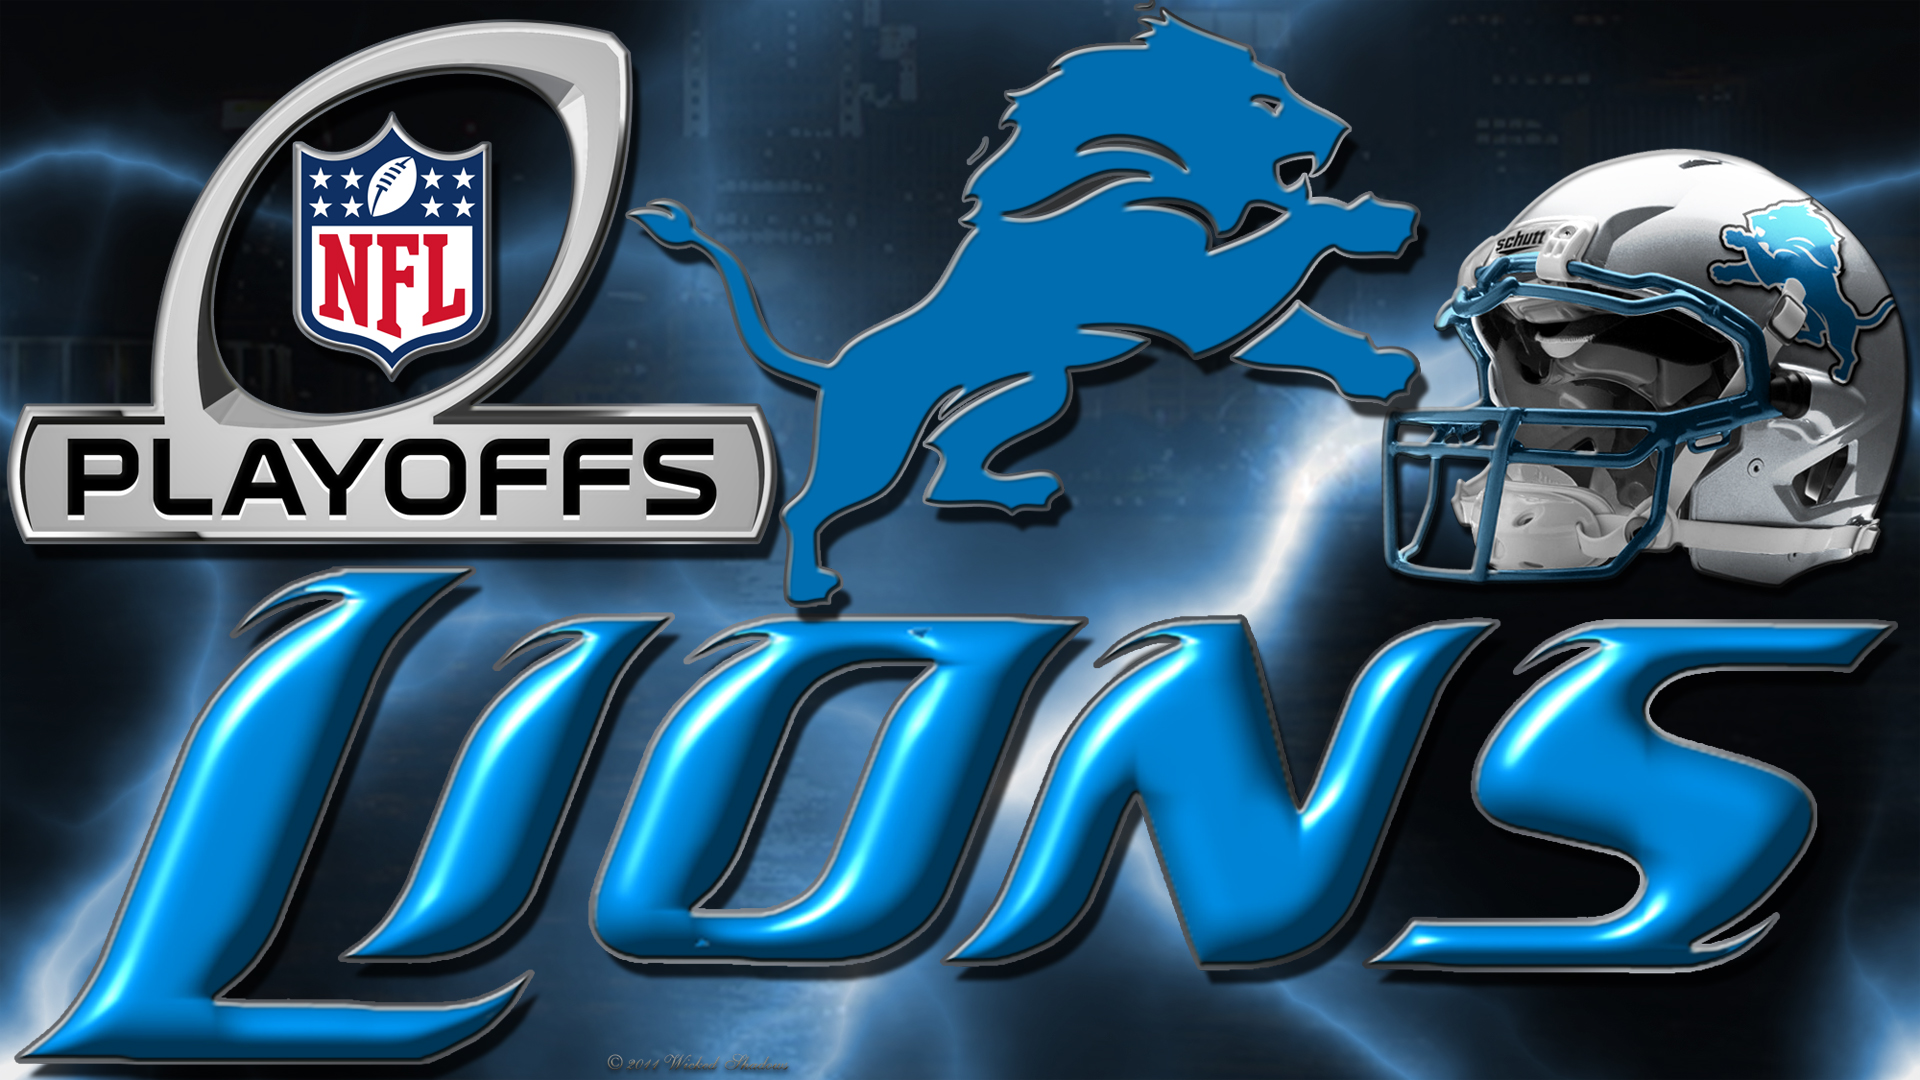 wallpapers by wicked shadows detroit lions 2012 playoffs